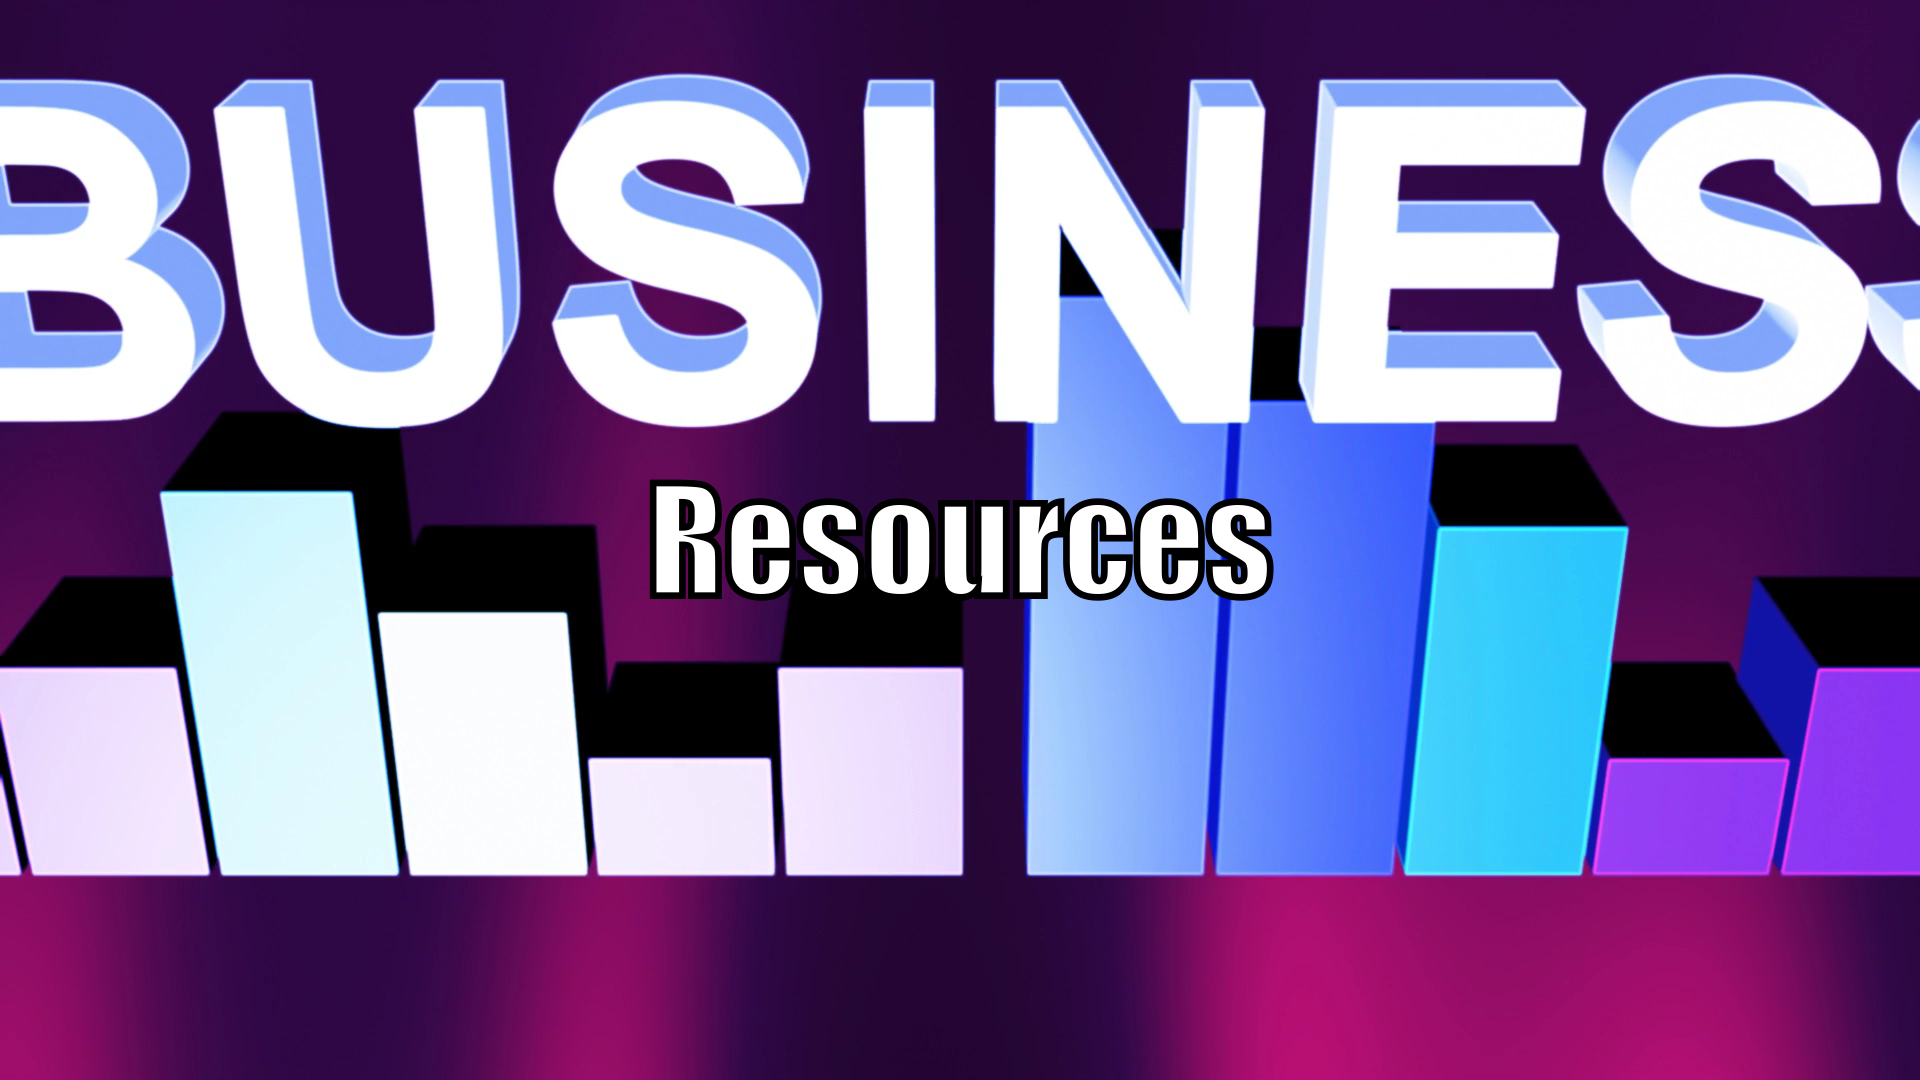 Business Resource Image